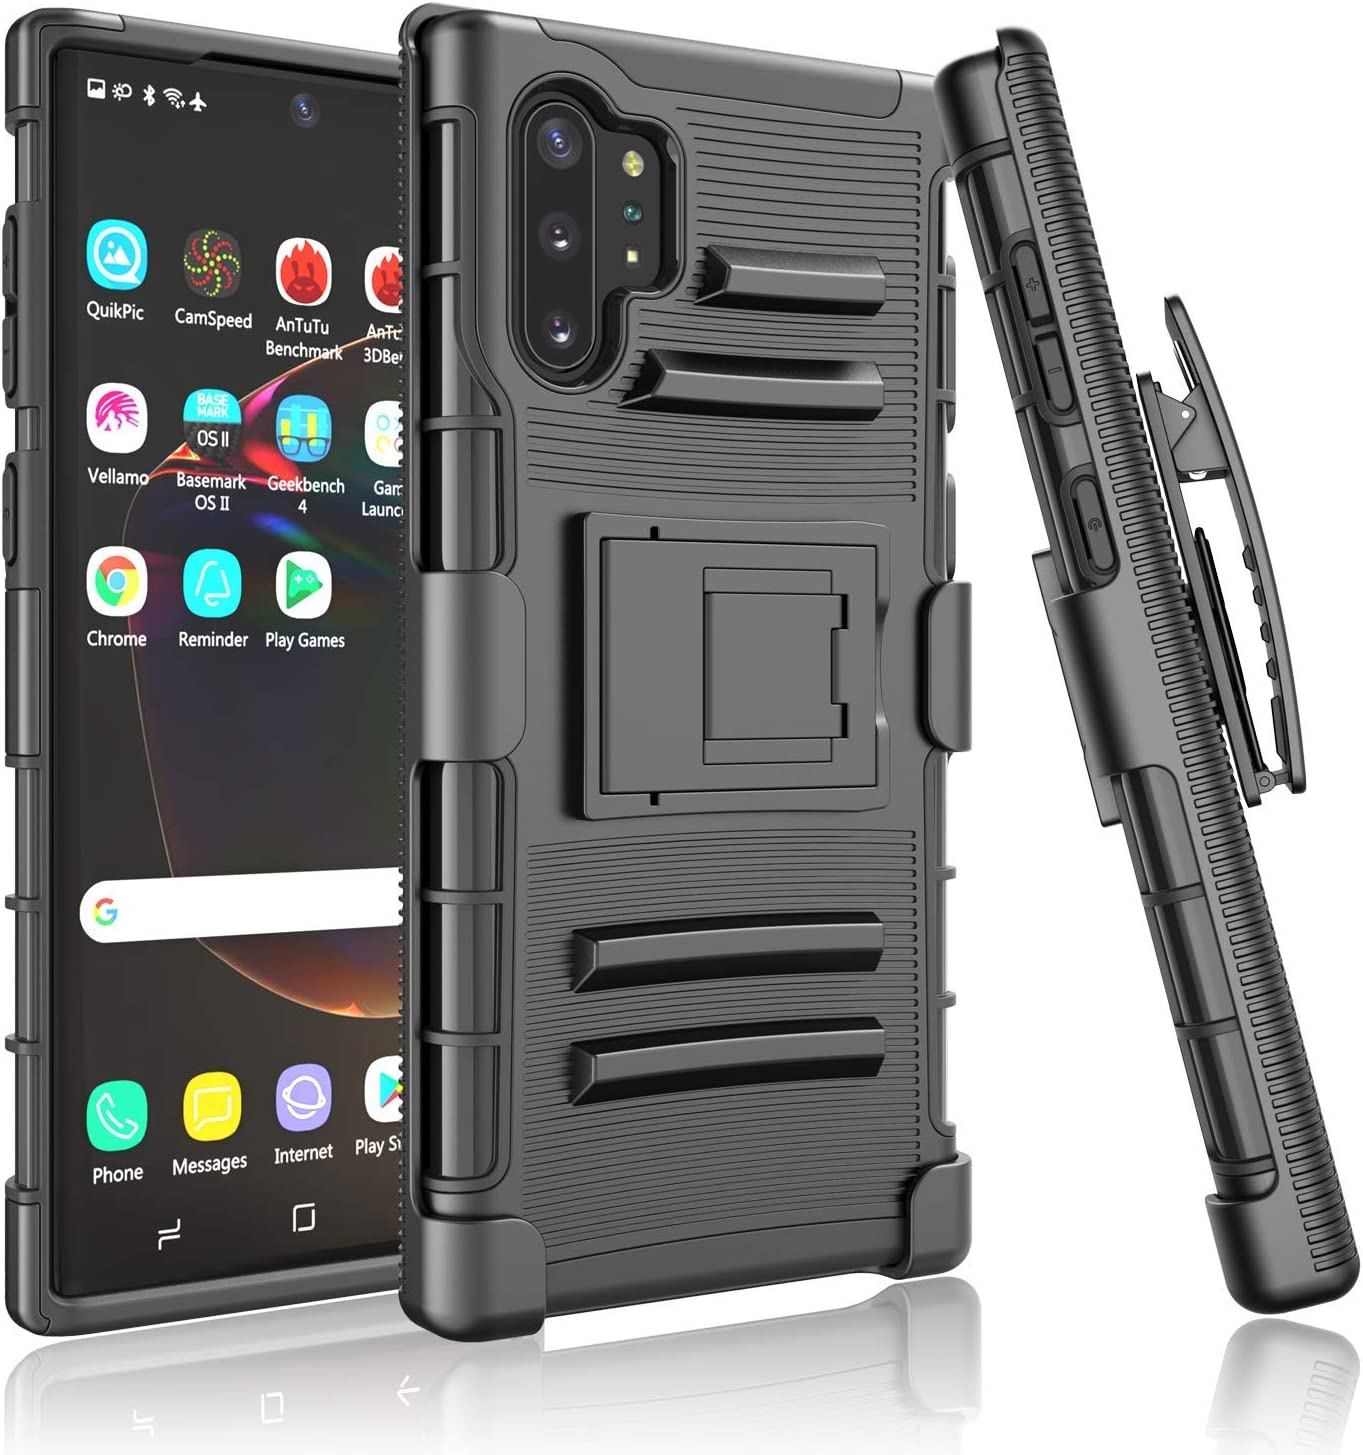 Takfox Galaxy Note 10 Plus Case/Galaxy Note 10 Plus 5G Case Protective Shockproof Belt Clip Holster Kickstand Rugged Hard Shell Rubber Protection Cover for Samsung Galaxy Note 10 Plus 6.8 inch-Black